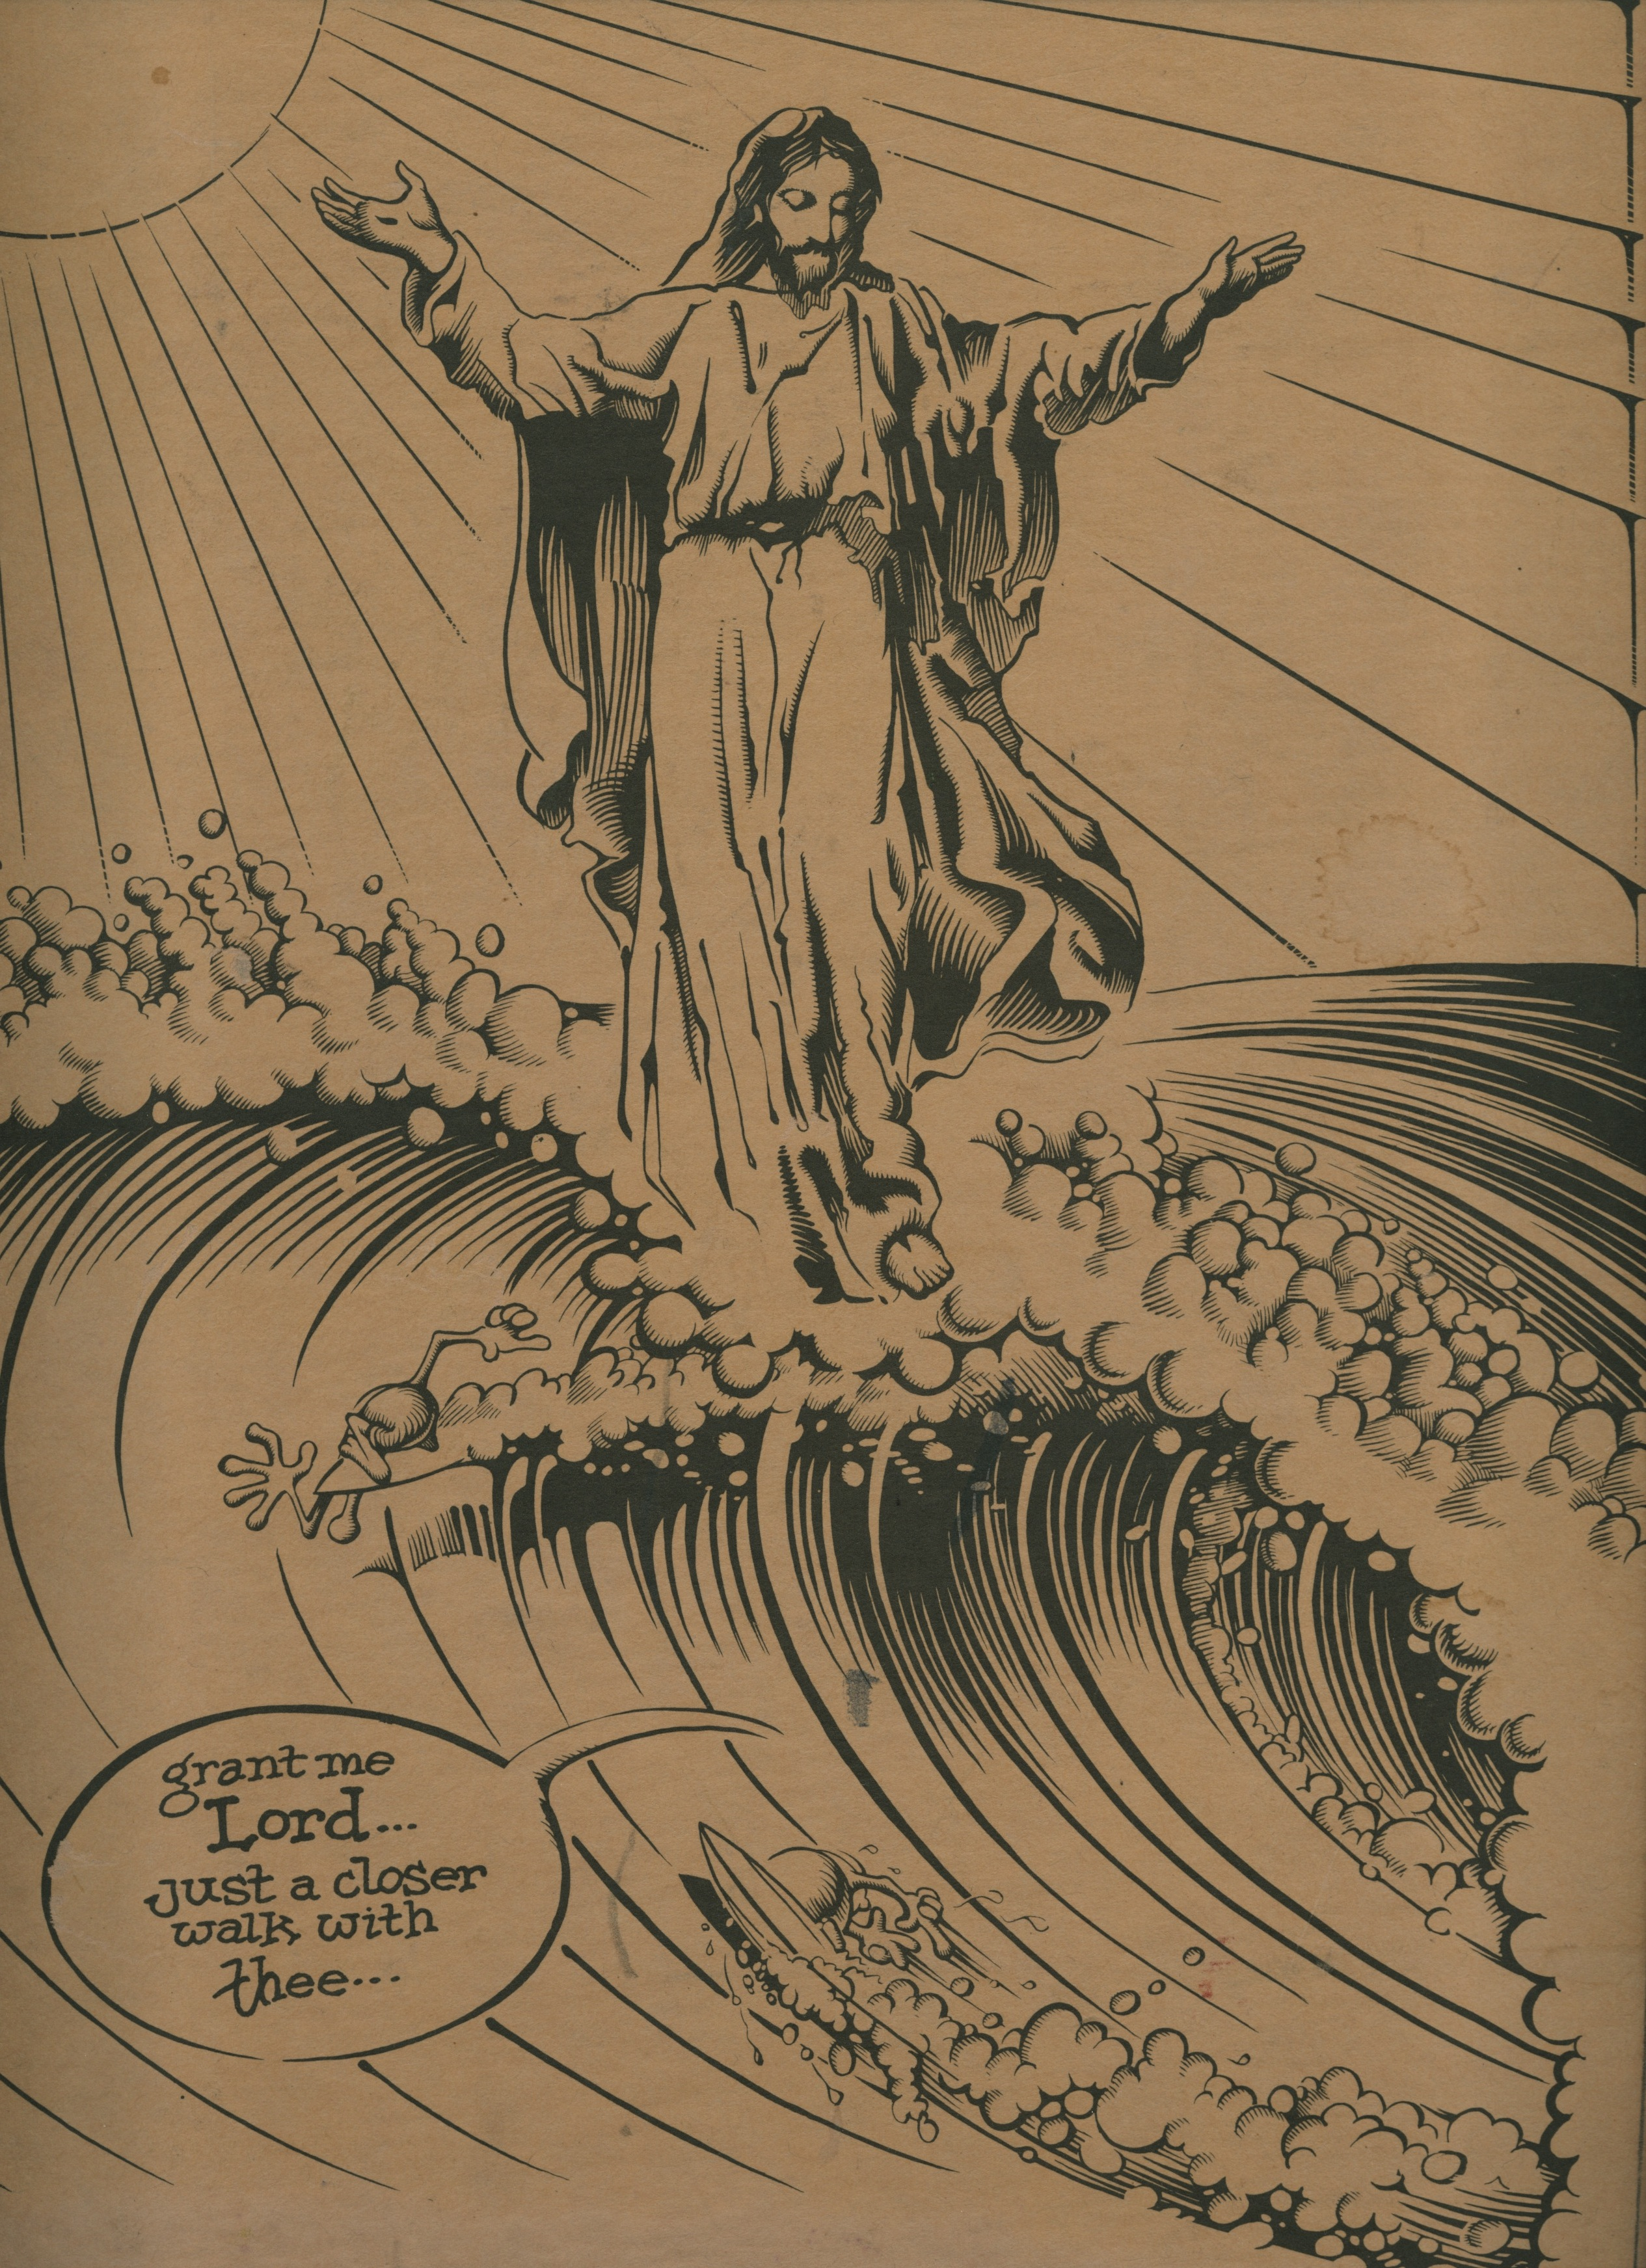 jesus_surf_print_by_rick_griffin_notime_usa